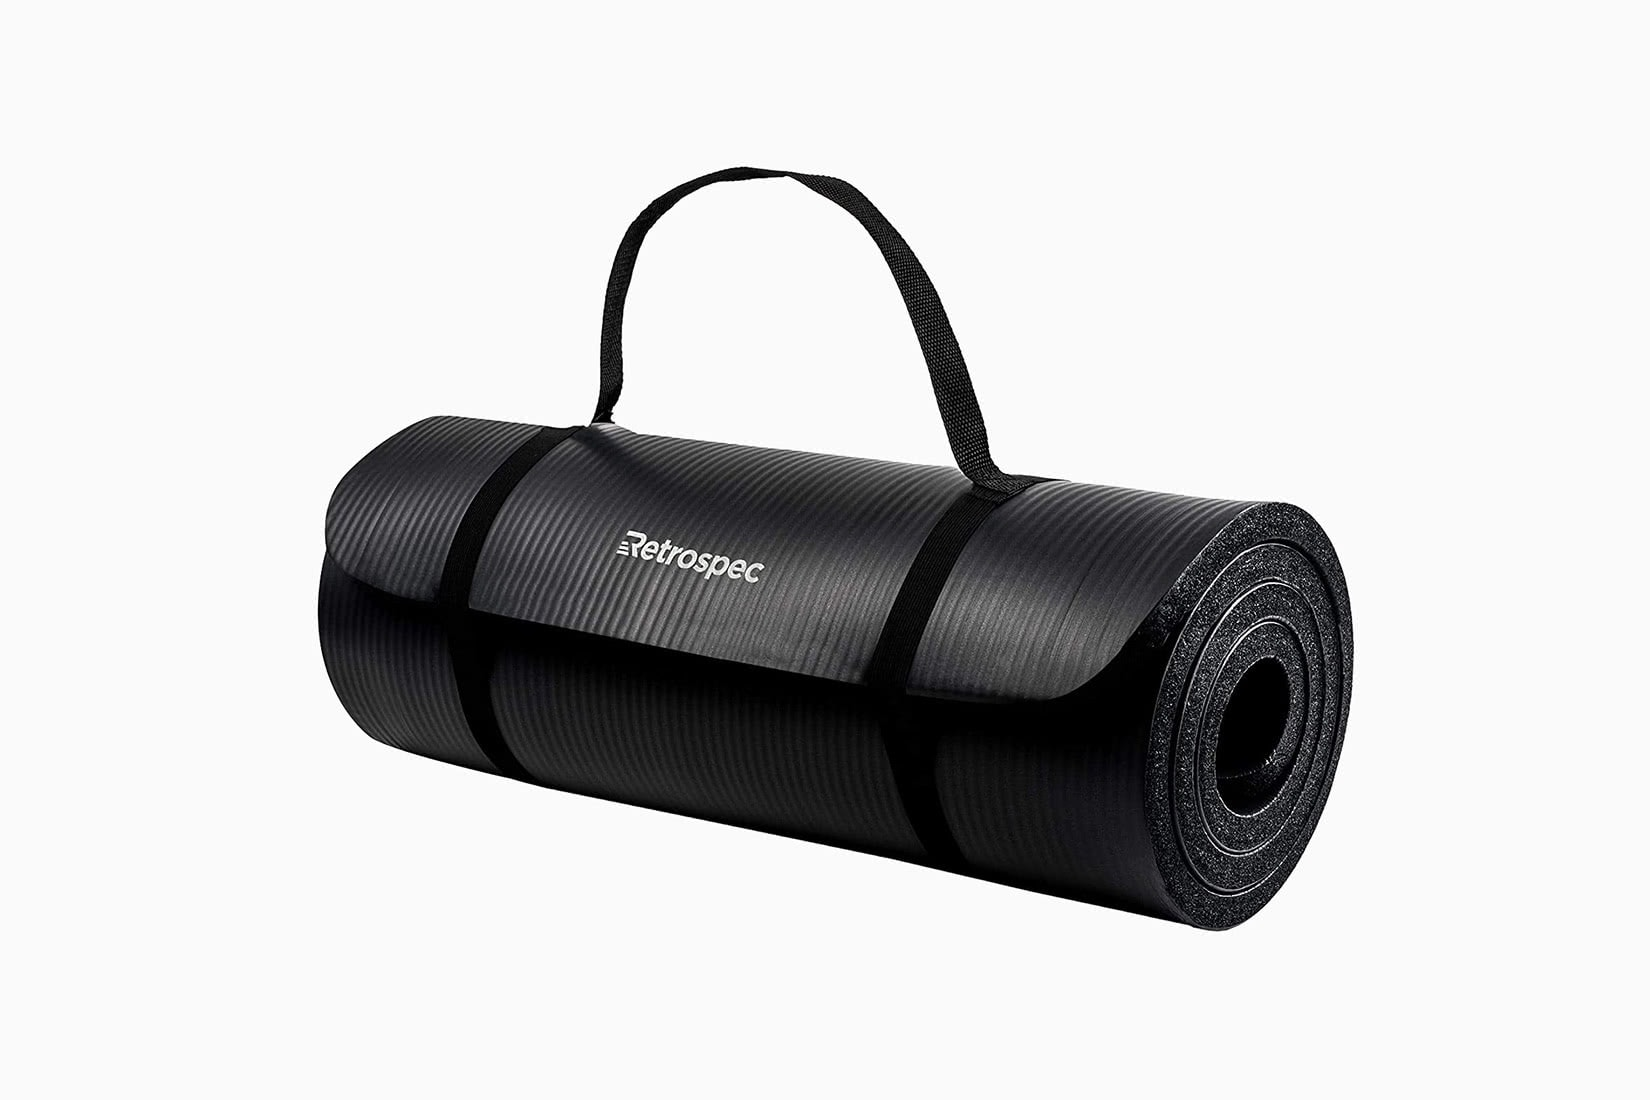 best yoga exercise mat extra thick Retrospec Solana review - Luxe Digital